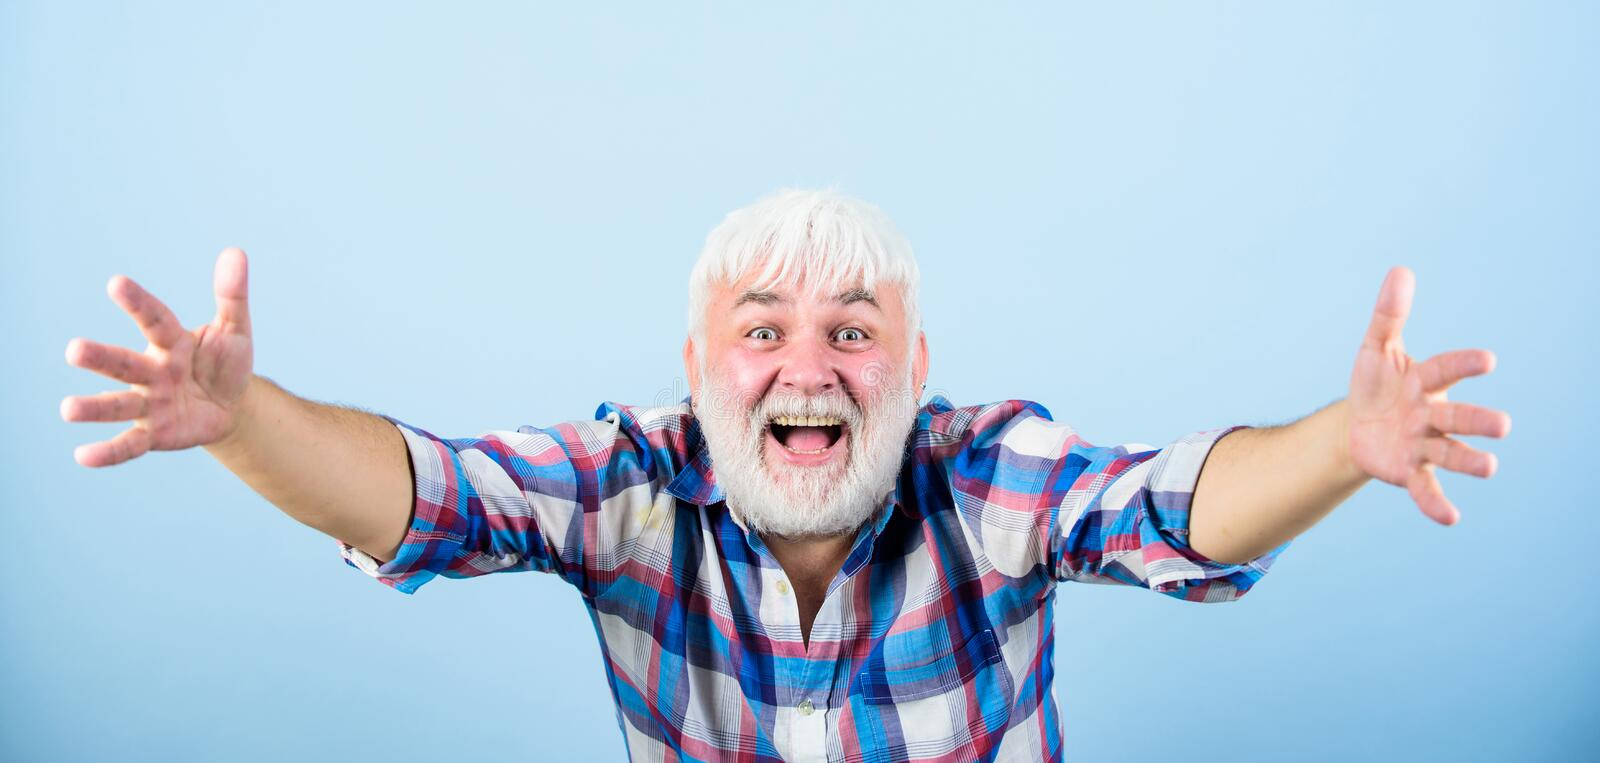 Be pampered. barber and hairdresser. male fashion. mature bearded man in white wig. Hairloss concept. health care. happy. Old granpa. senior man with gray beard stock image